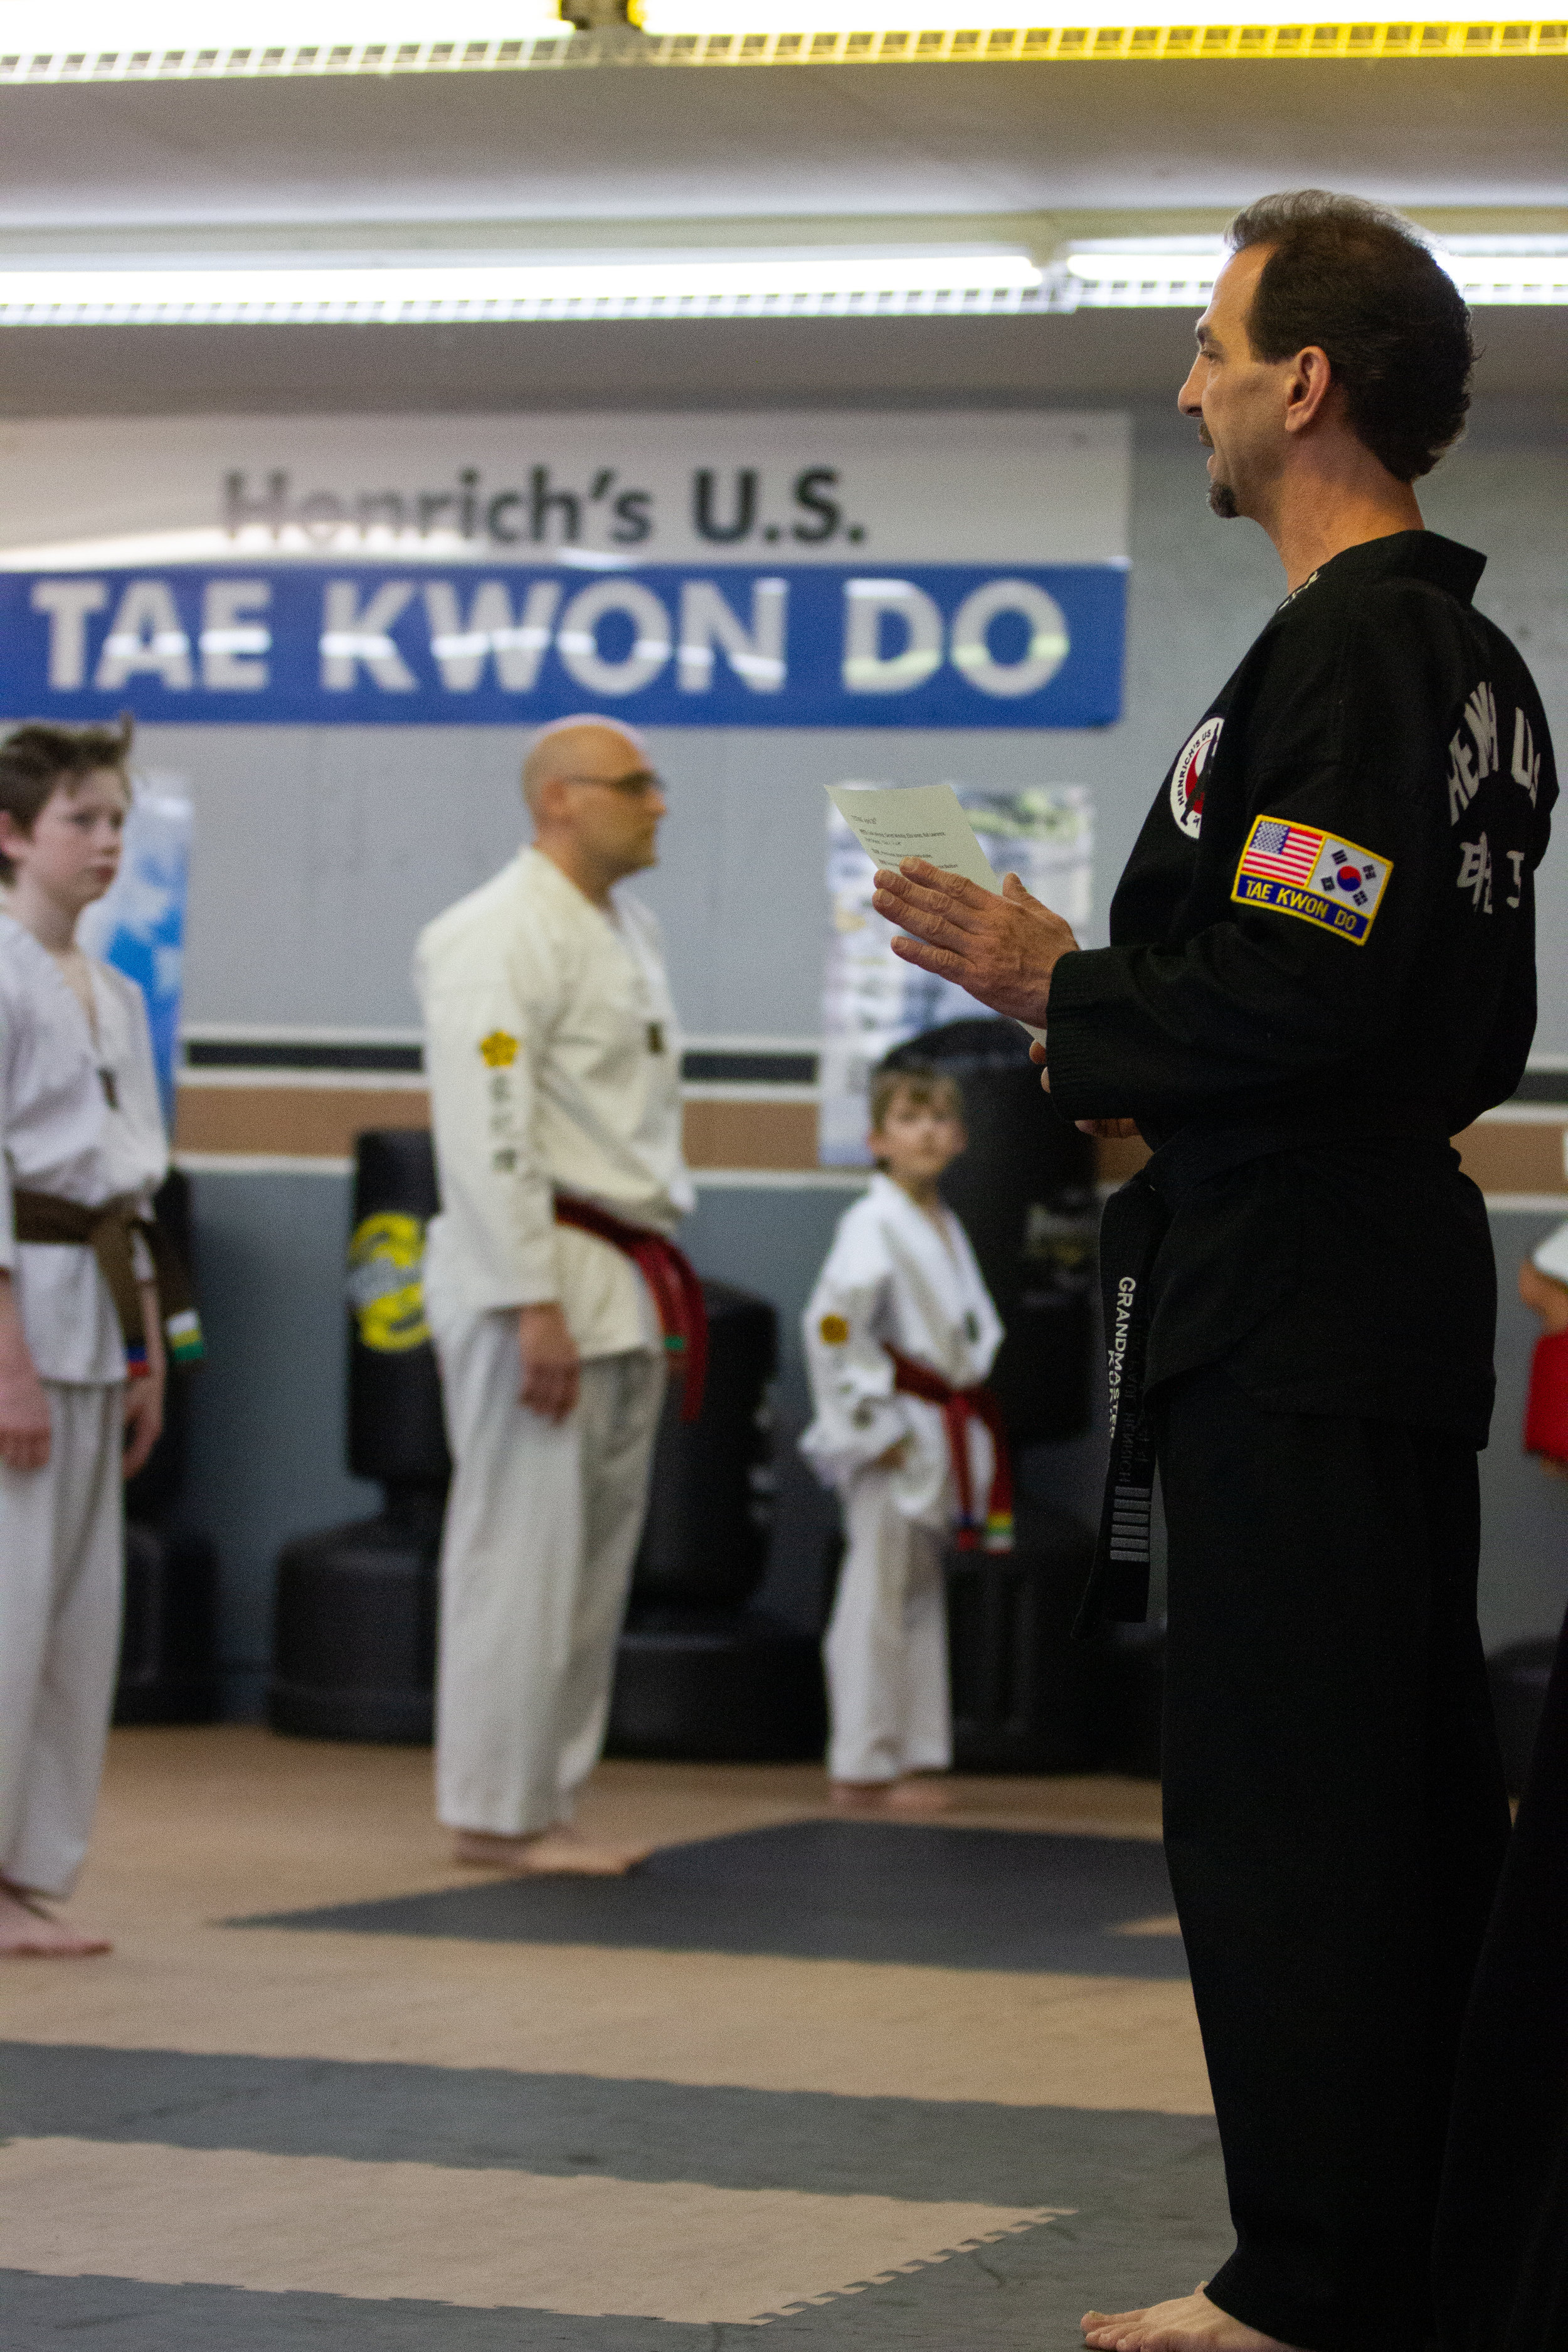 Master Paul Henrich addressing students at a belt-advancement test.